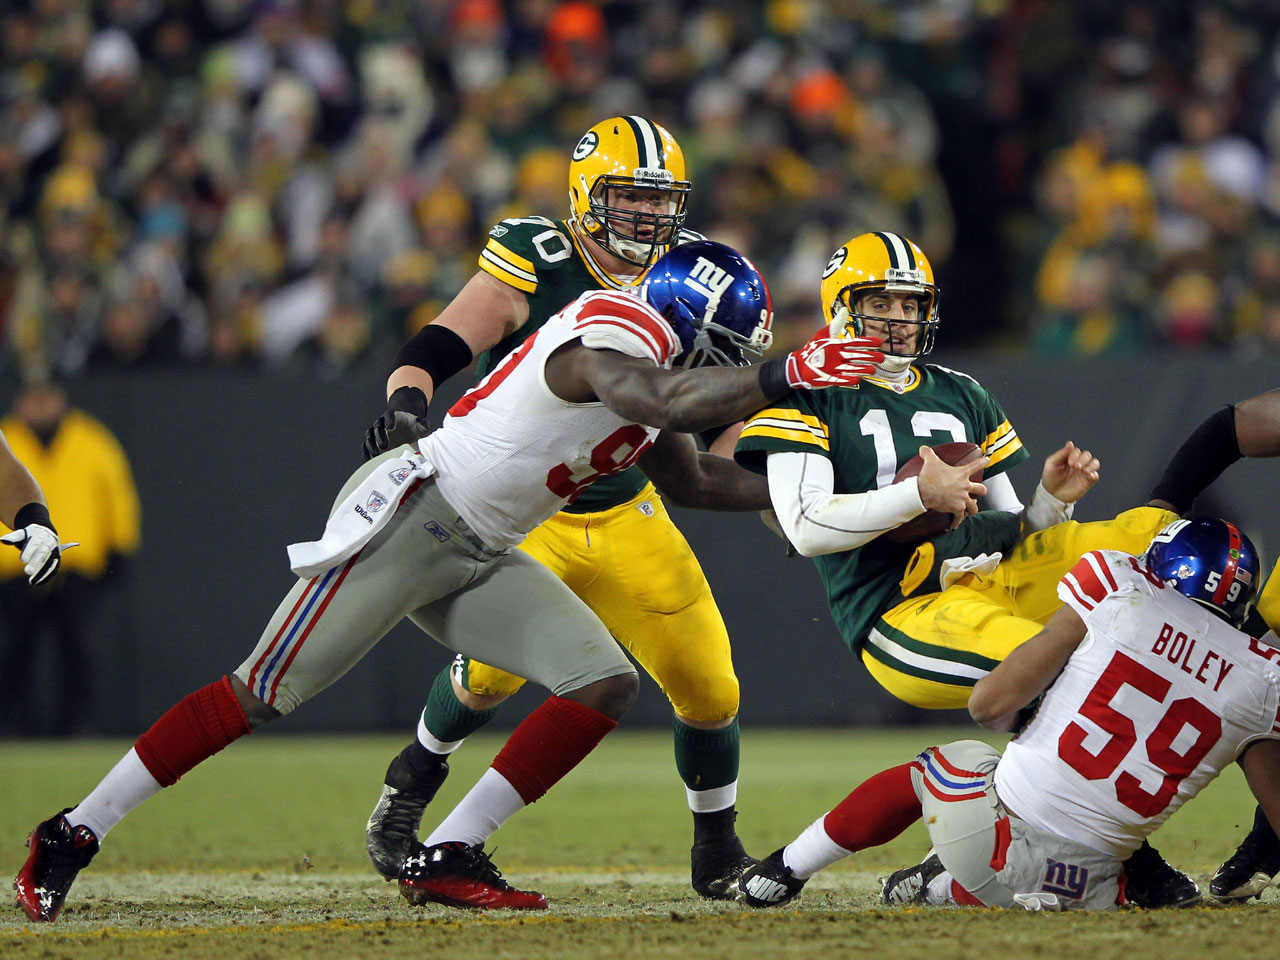 Green Bay Packers at New York Giants: Packers looking to bounce back after rude awakening